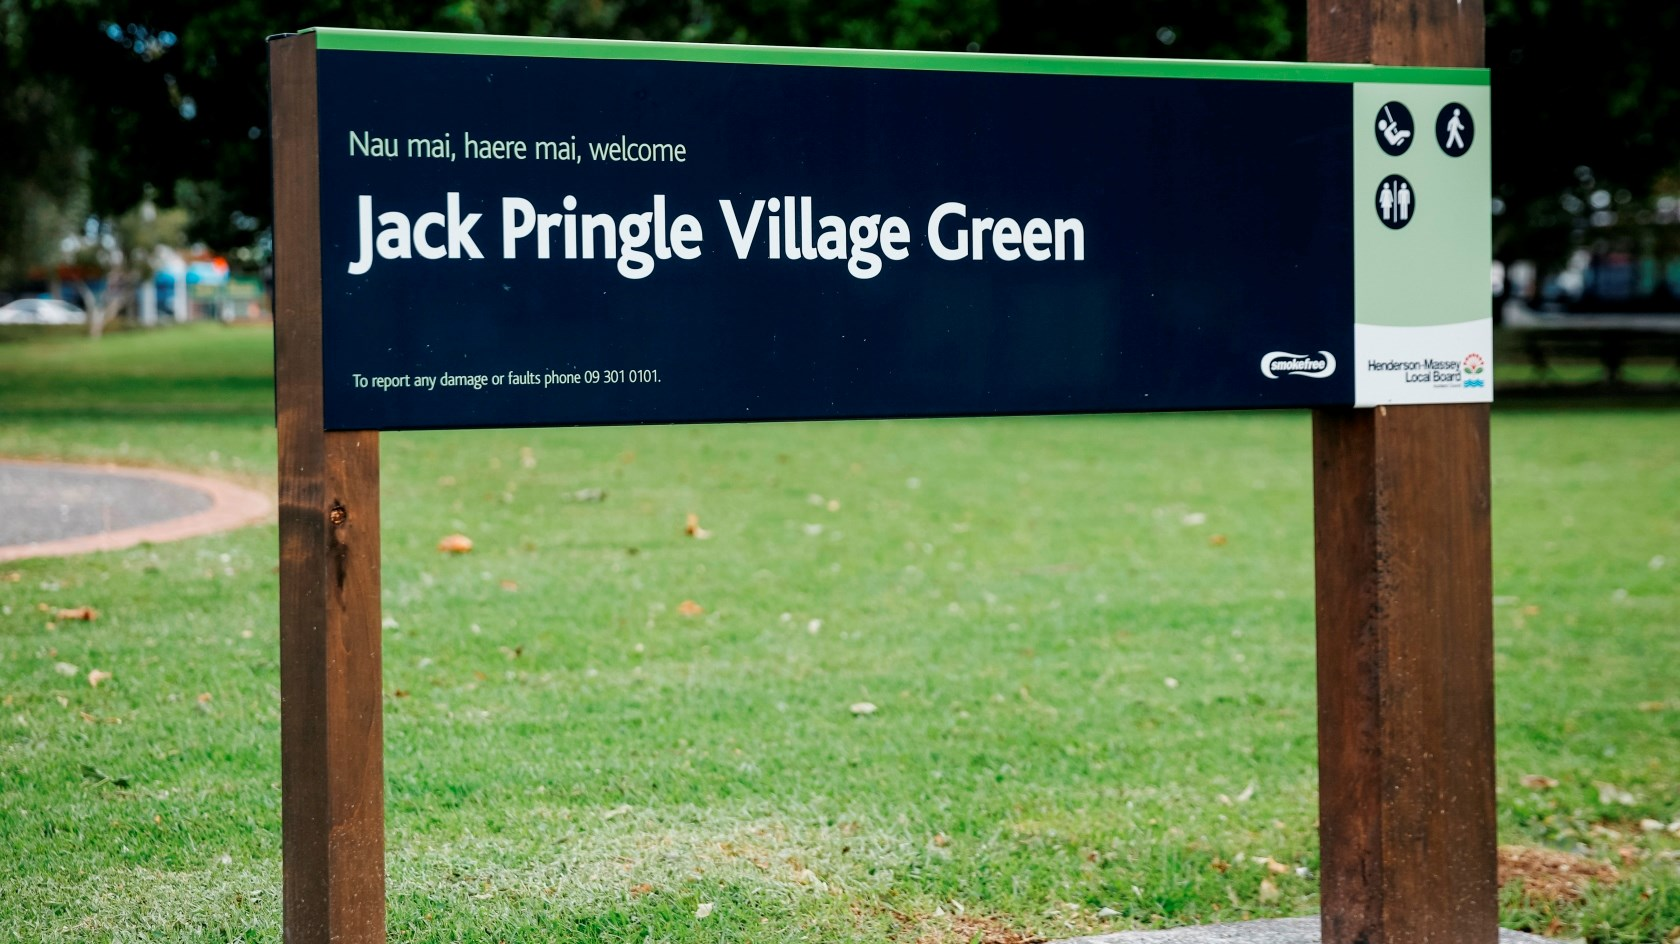 Jack Pringle Village Green blade sign